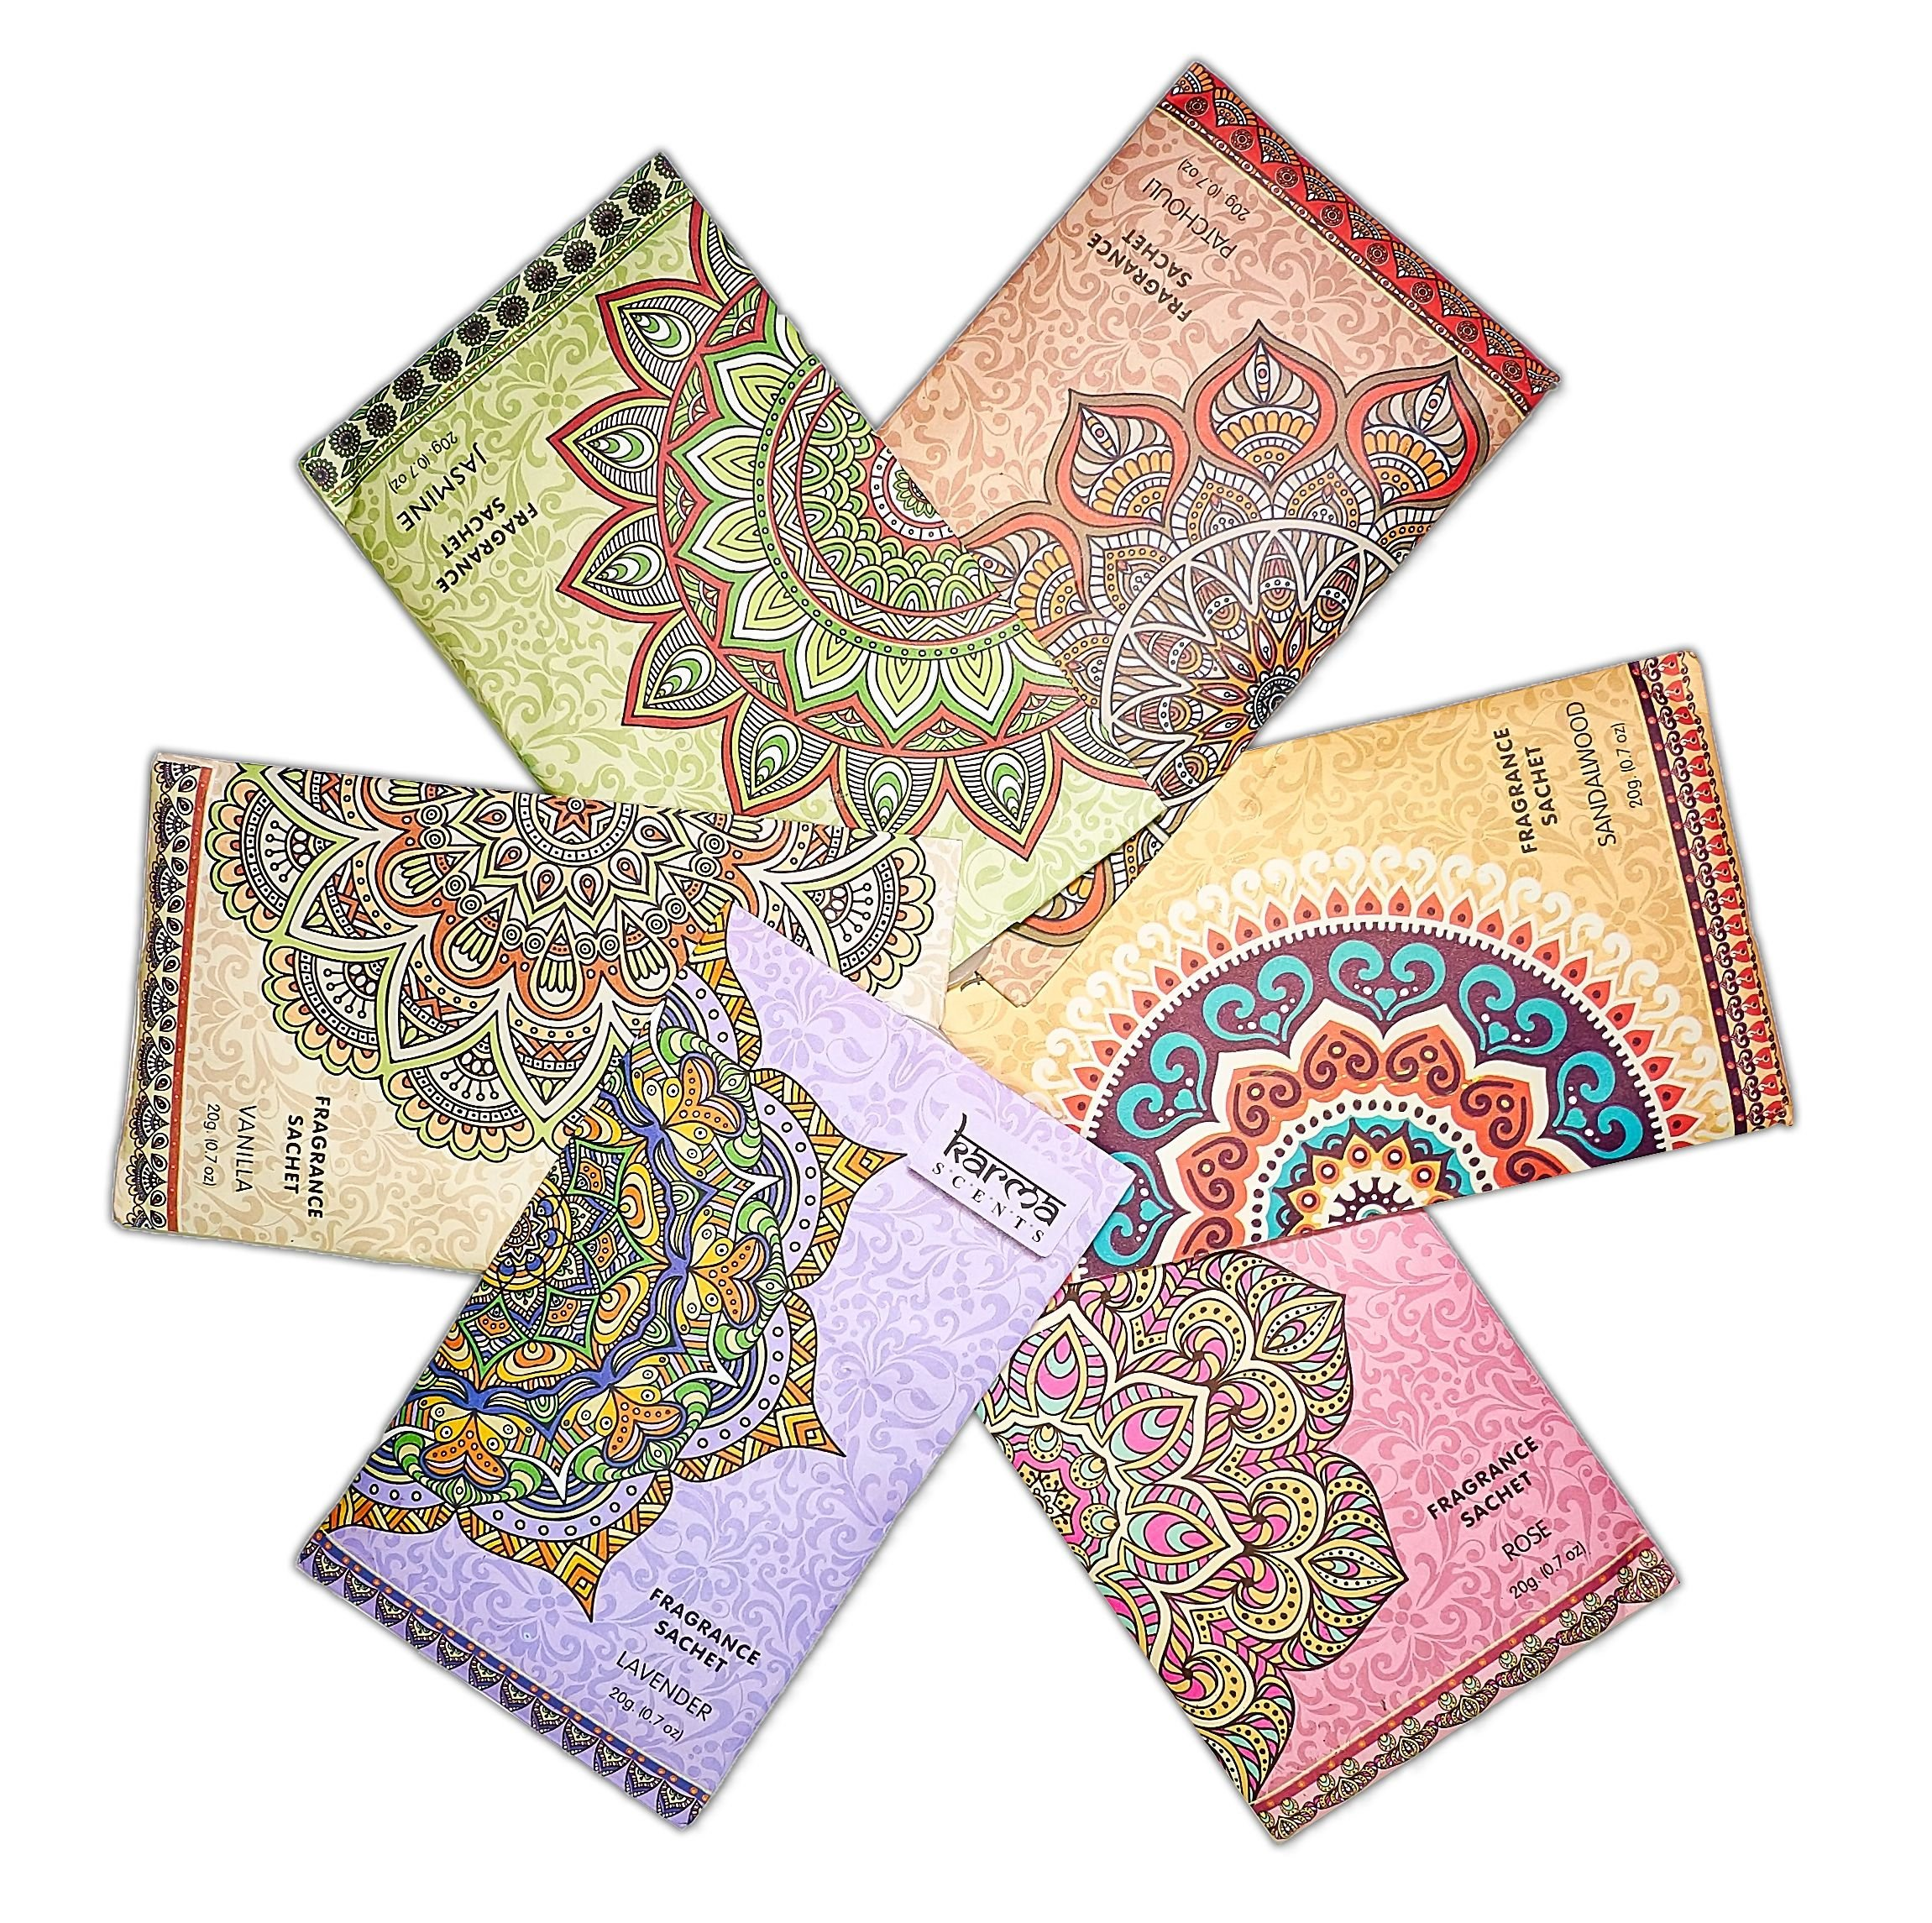 Premium Scented Sachets for Drawers, Closets and Cars, Lovely Fresh fragrance, Lot of 18 Bags, By Karma Scents, contains 6 great smelling flavors,Vanilla,Sandalwood,Jasmine,Lavender,Patchouli,And Rose by Karma Scents